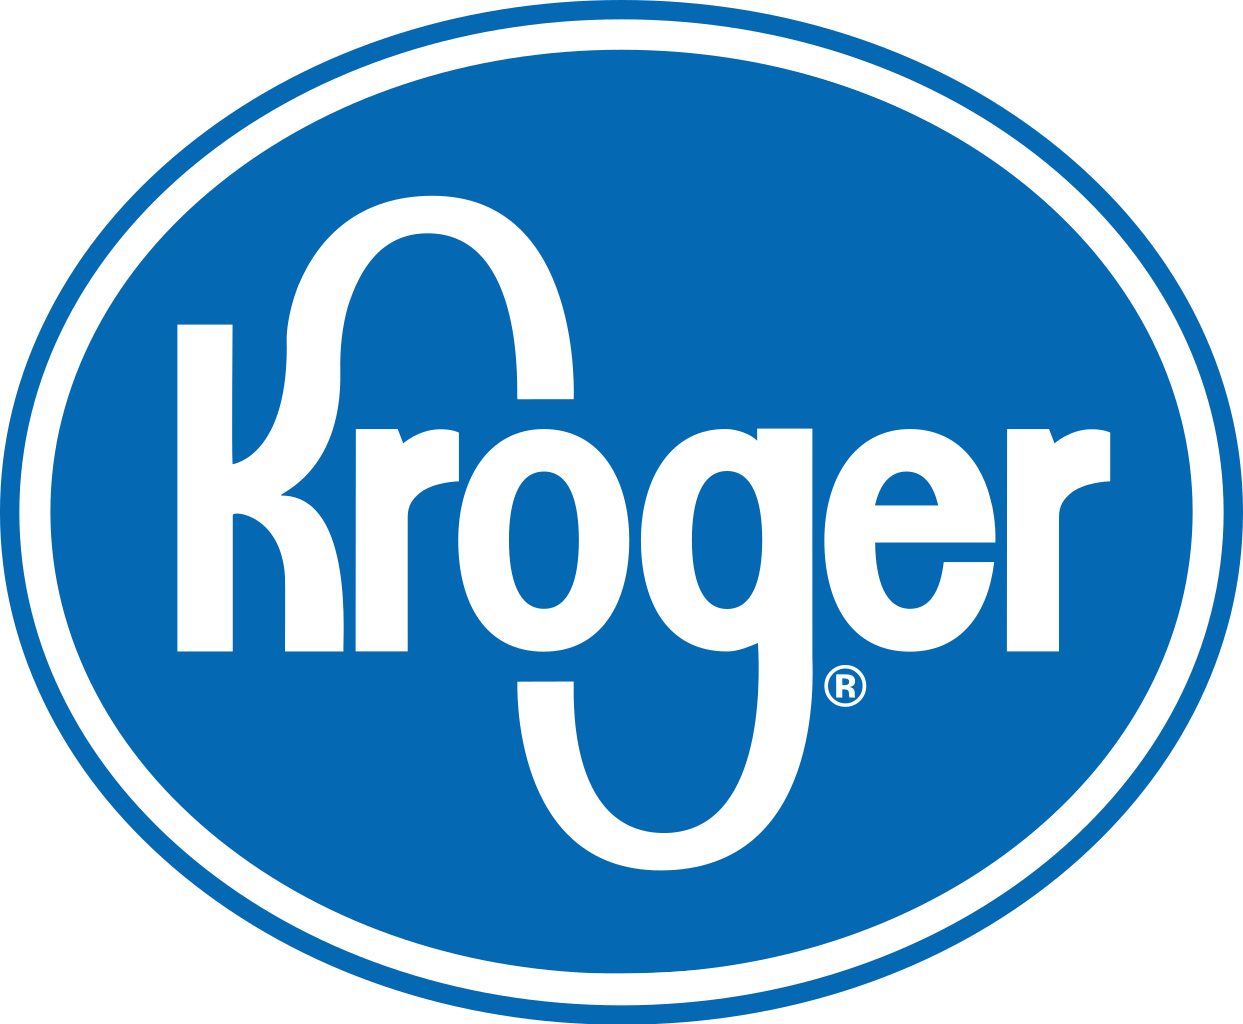 Kroger Community Rewards - Did you know that you can supportKay Granger Elementary PTAjust by shopping at Kroger?The Kroger Co. Family of Stores are on a mission to go beyond being a part of the community to also helping create a stronger community. We appreciate your participation in our Community Rewards program to help accomplish that mission! Please join or update your account today!!! August is renewal month and accounts need updated yearly!!!Our Account Number is YH660 or you can find us by searching Kay Granger Elementary PTAClick Below if you need further instructions! Thanks for your support!